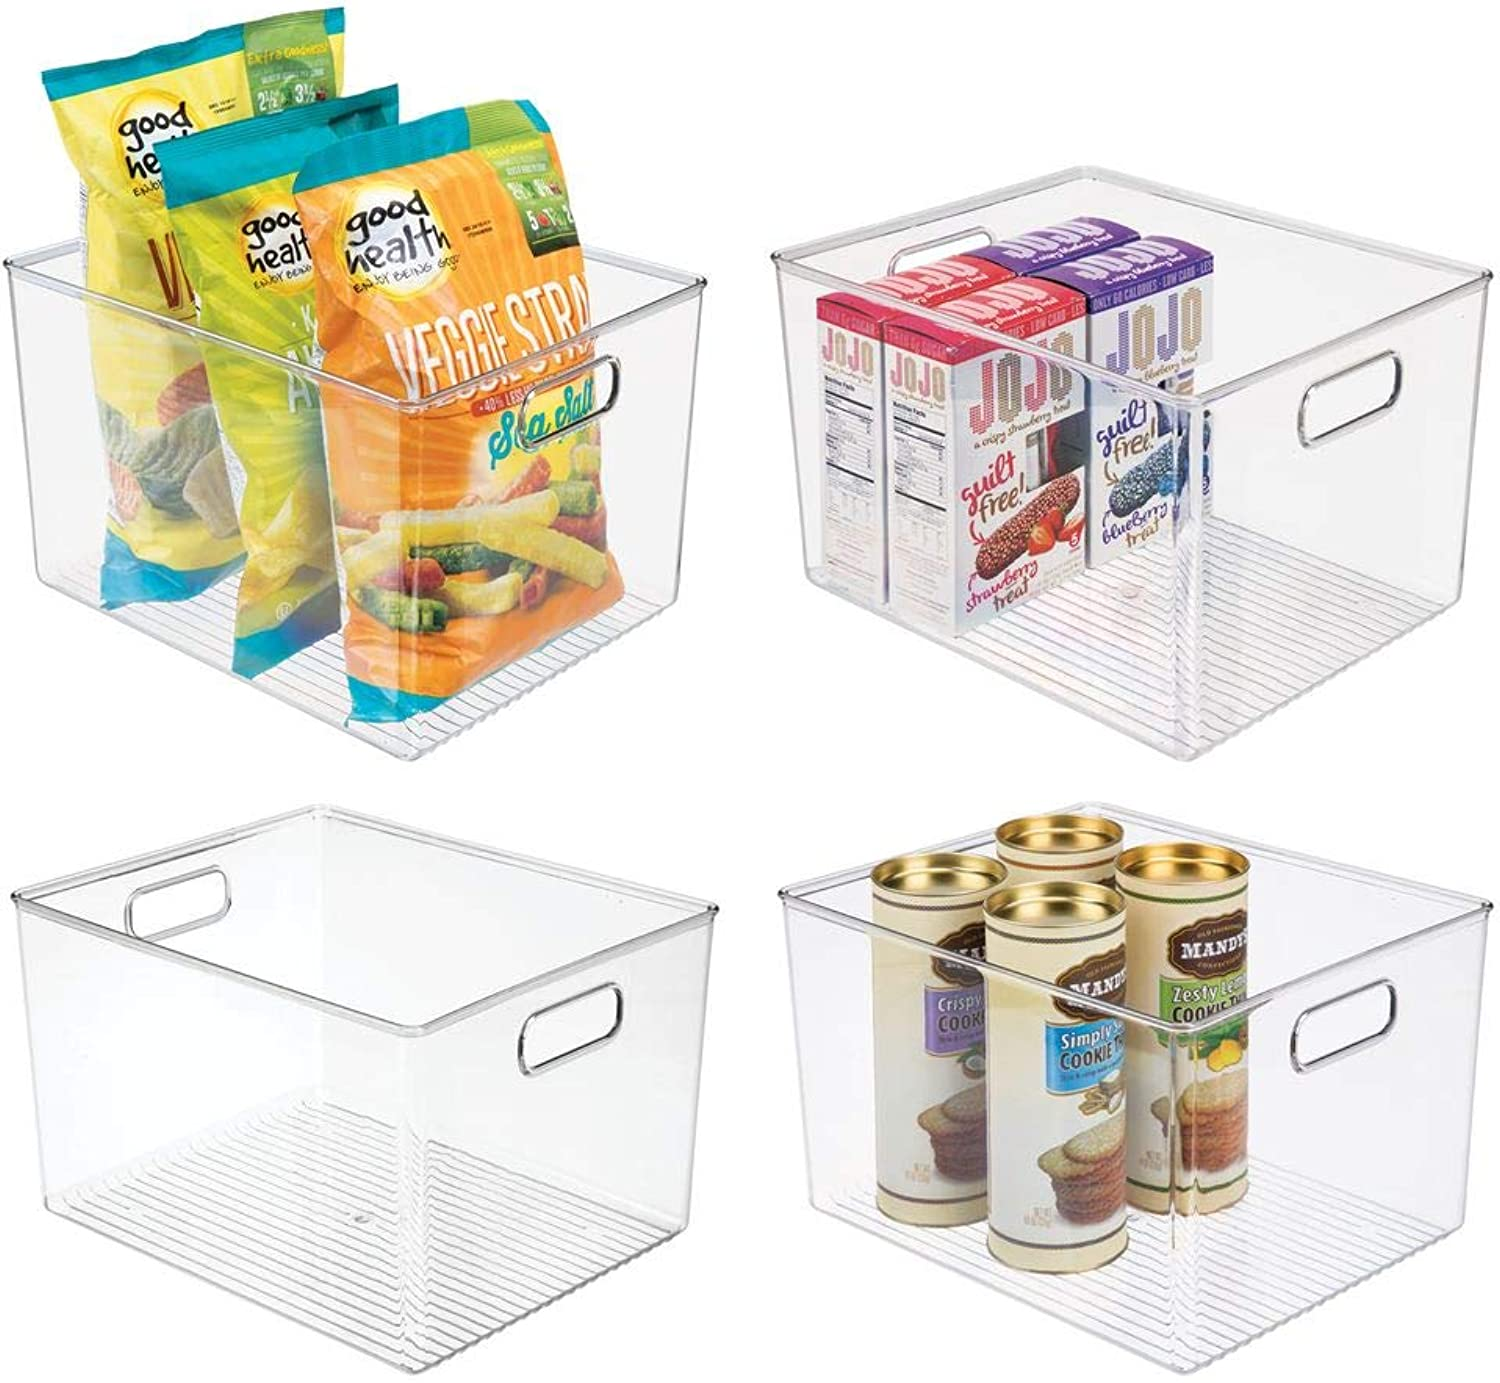 MDesign Plastic Storage Organizer Container Bins Holders with Handles - for Kitchen, Pantry, Cabinet, Fridge Freezer - Large for Organizing Snacks, Produce, Vegetables, Pasta Food - 4 Pack - Clear